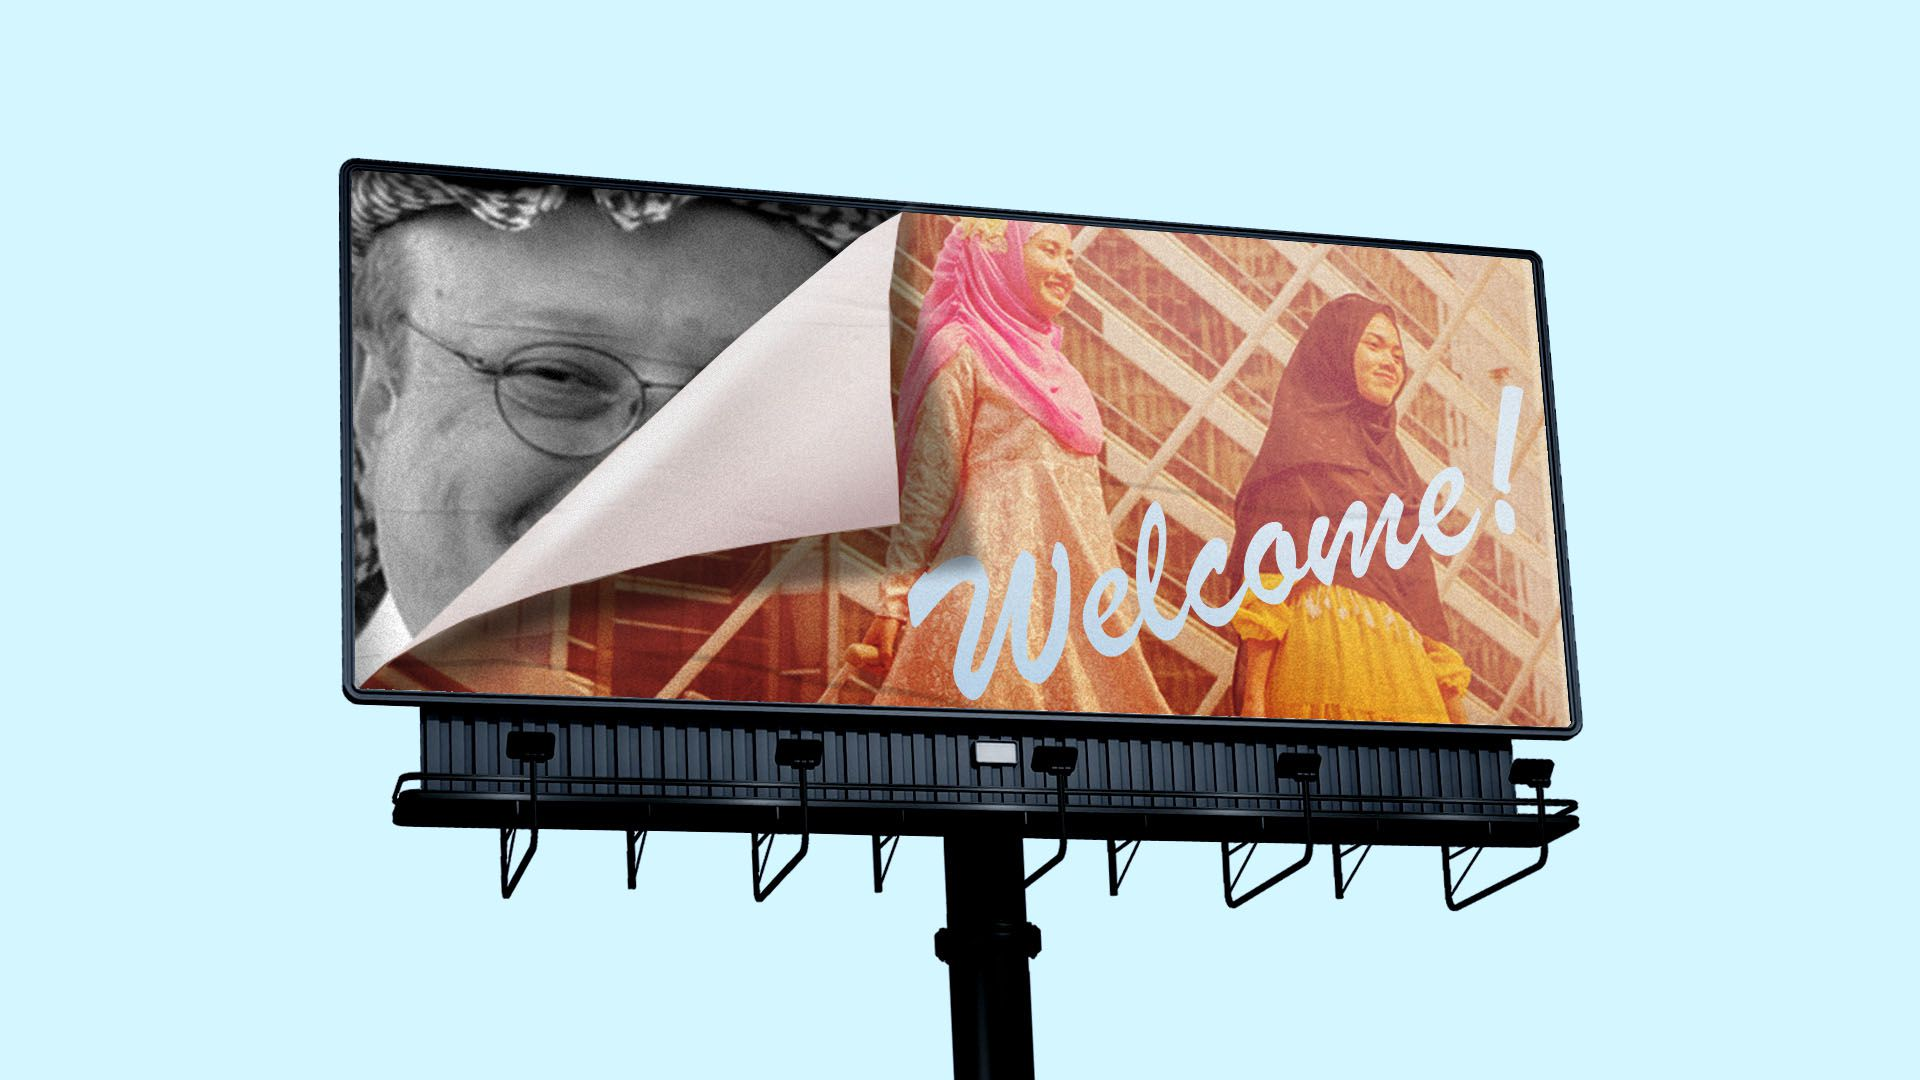 Illustration of journalist Jamal Khashoggi's photograph on a billboard being covered up by a tourist campaign